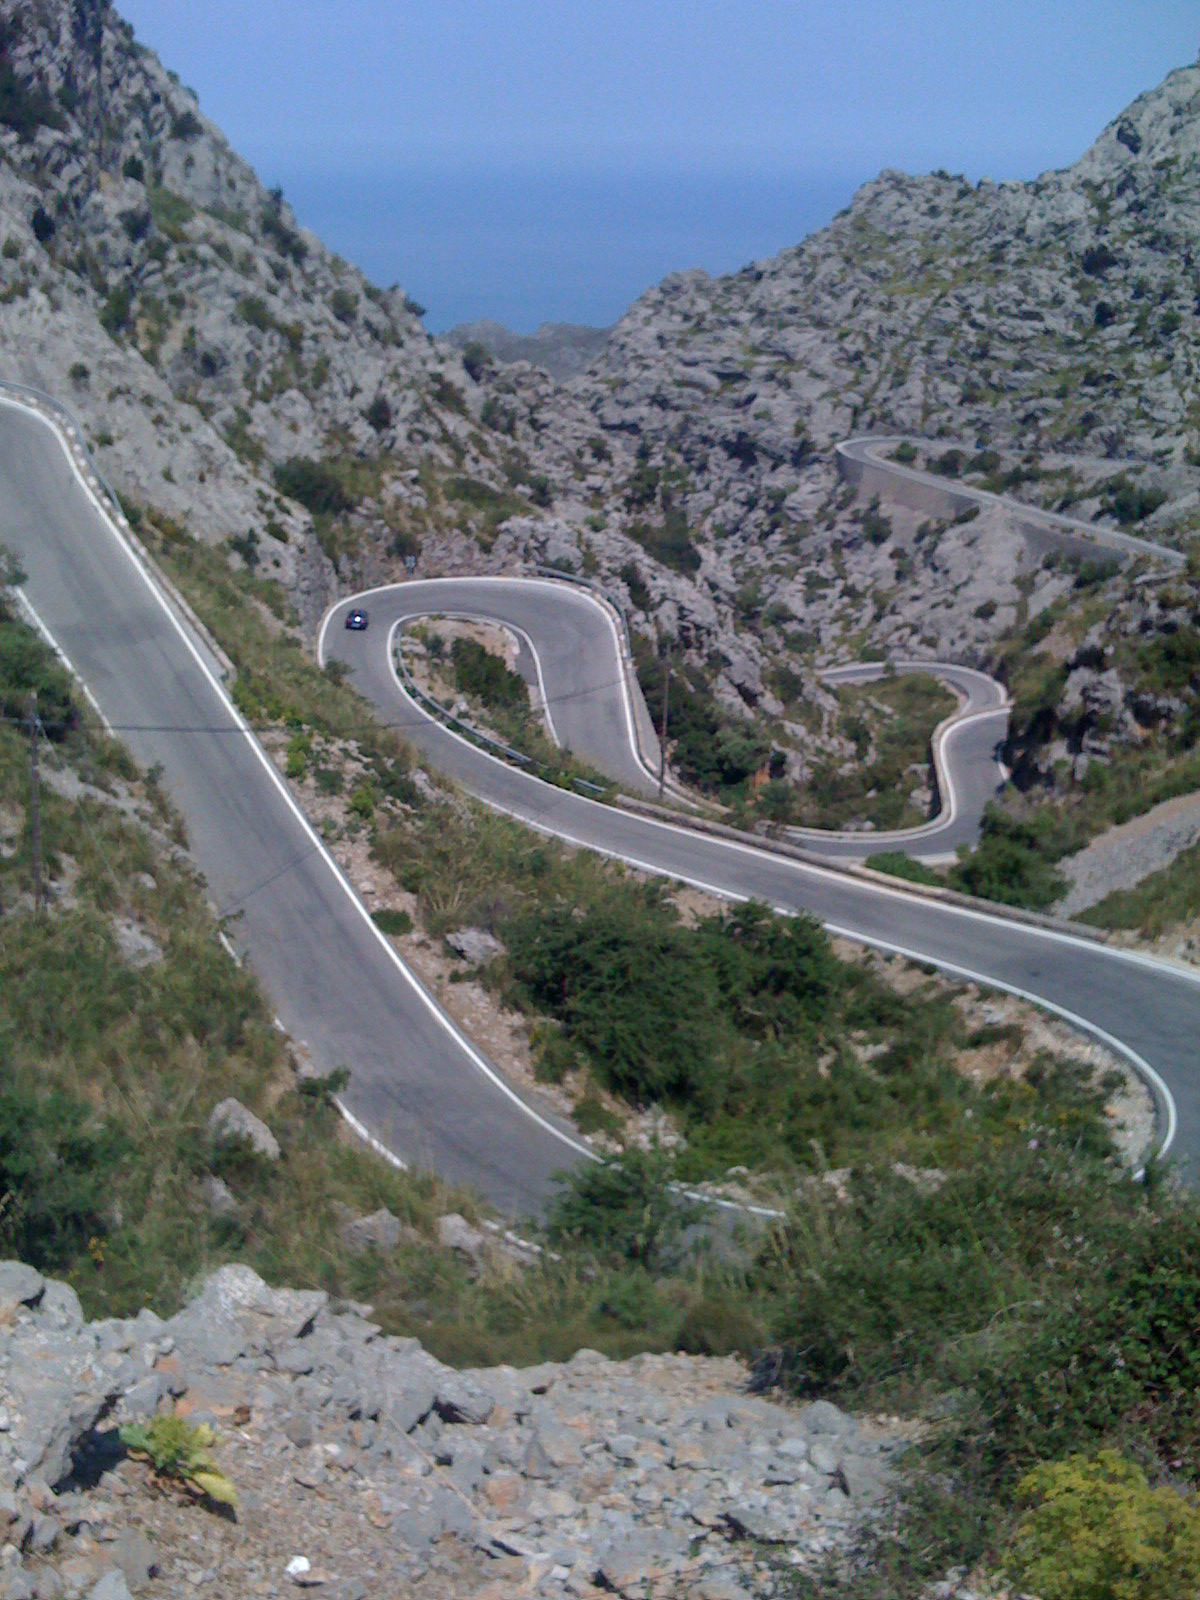 Hairpin bends to Sa Calobra